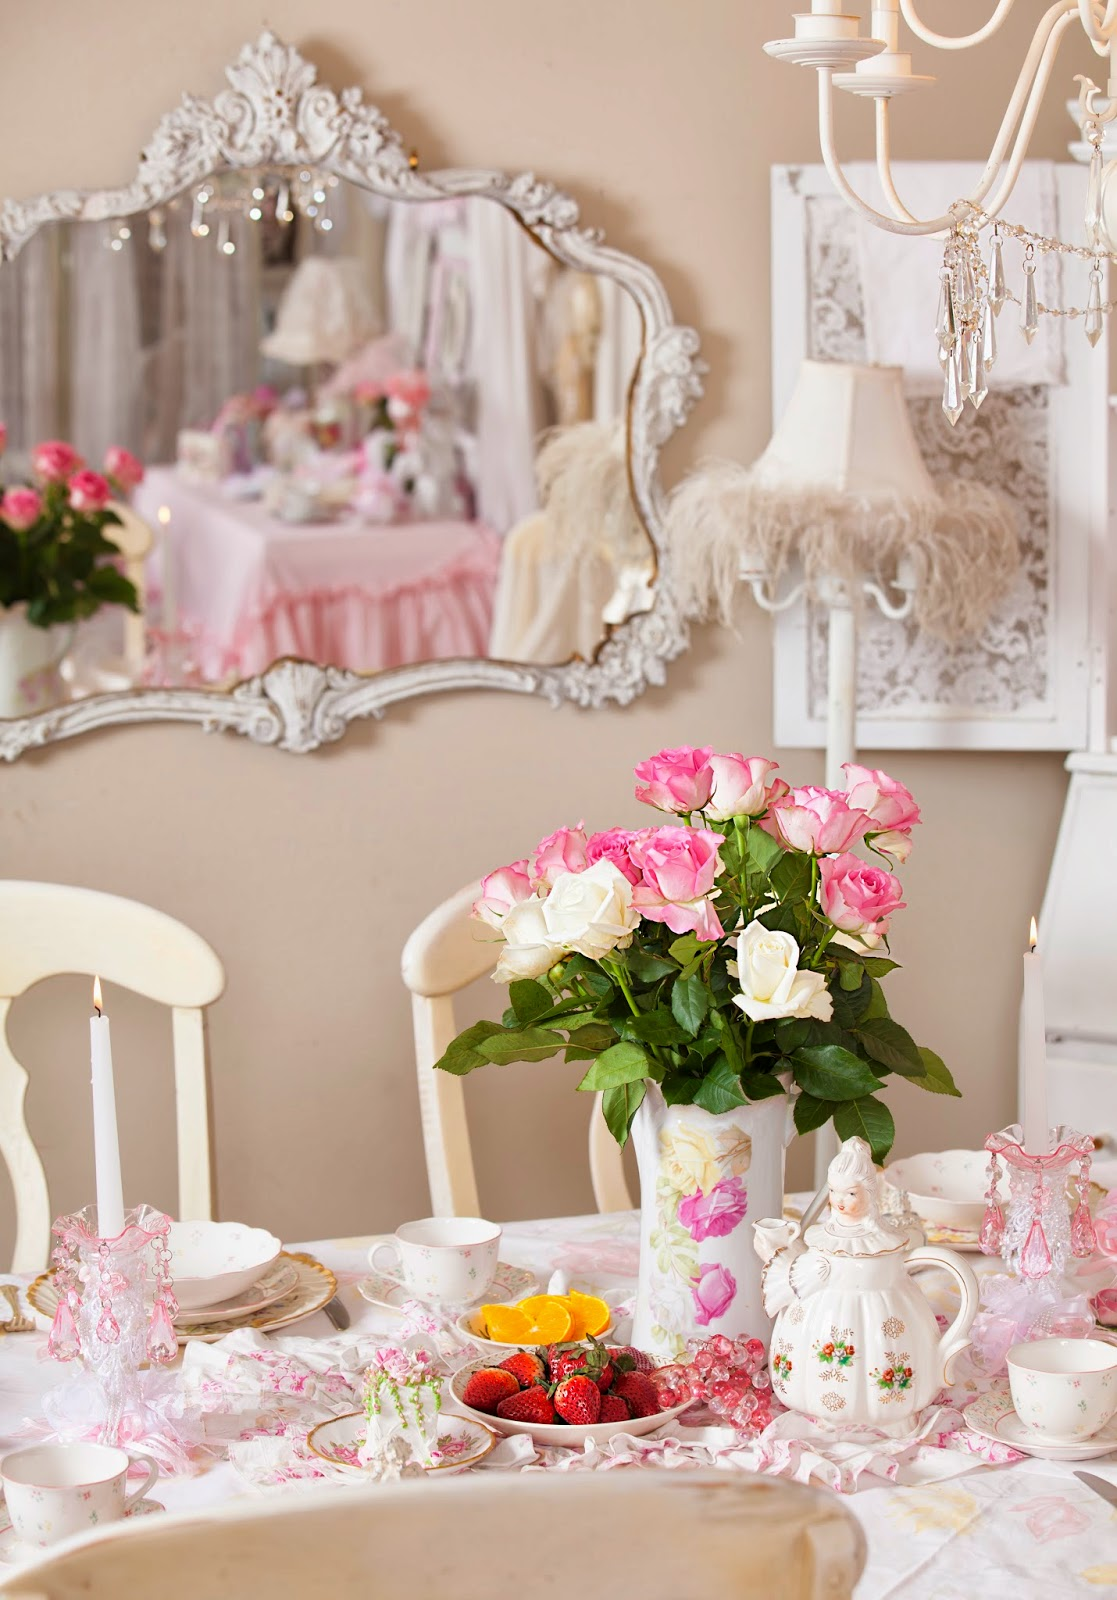 Shabby Chic And Eclectic Decorating Living Room: Olivia's Romantic Home: Shabby Chic Dining Room